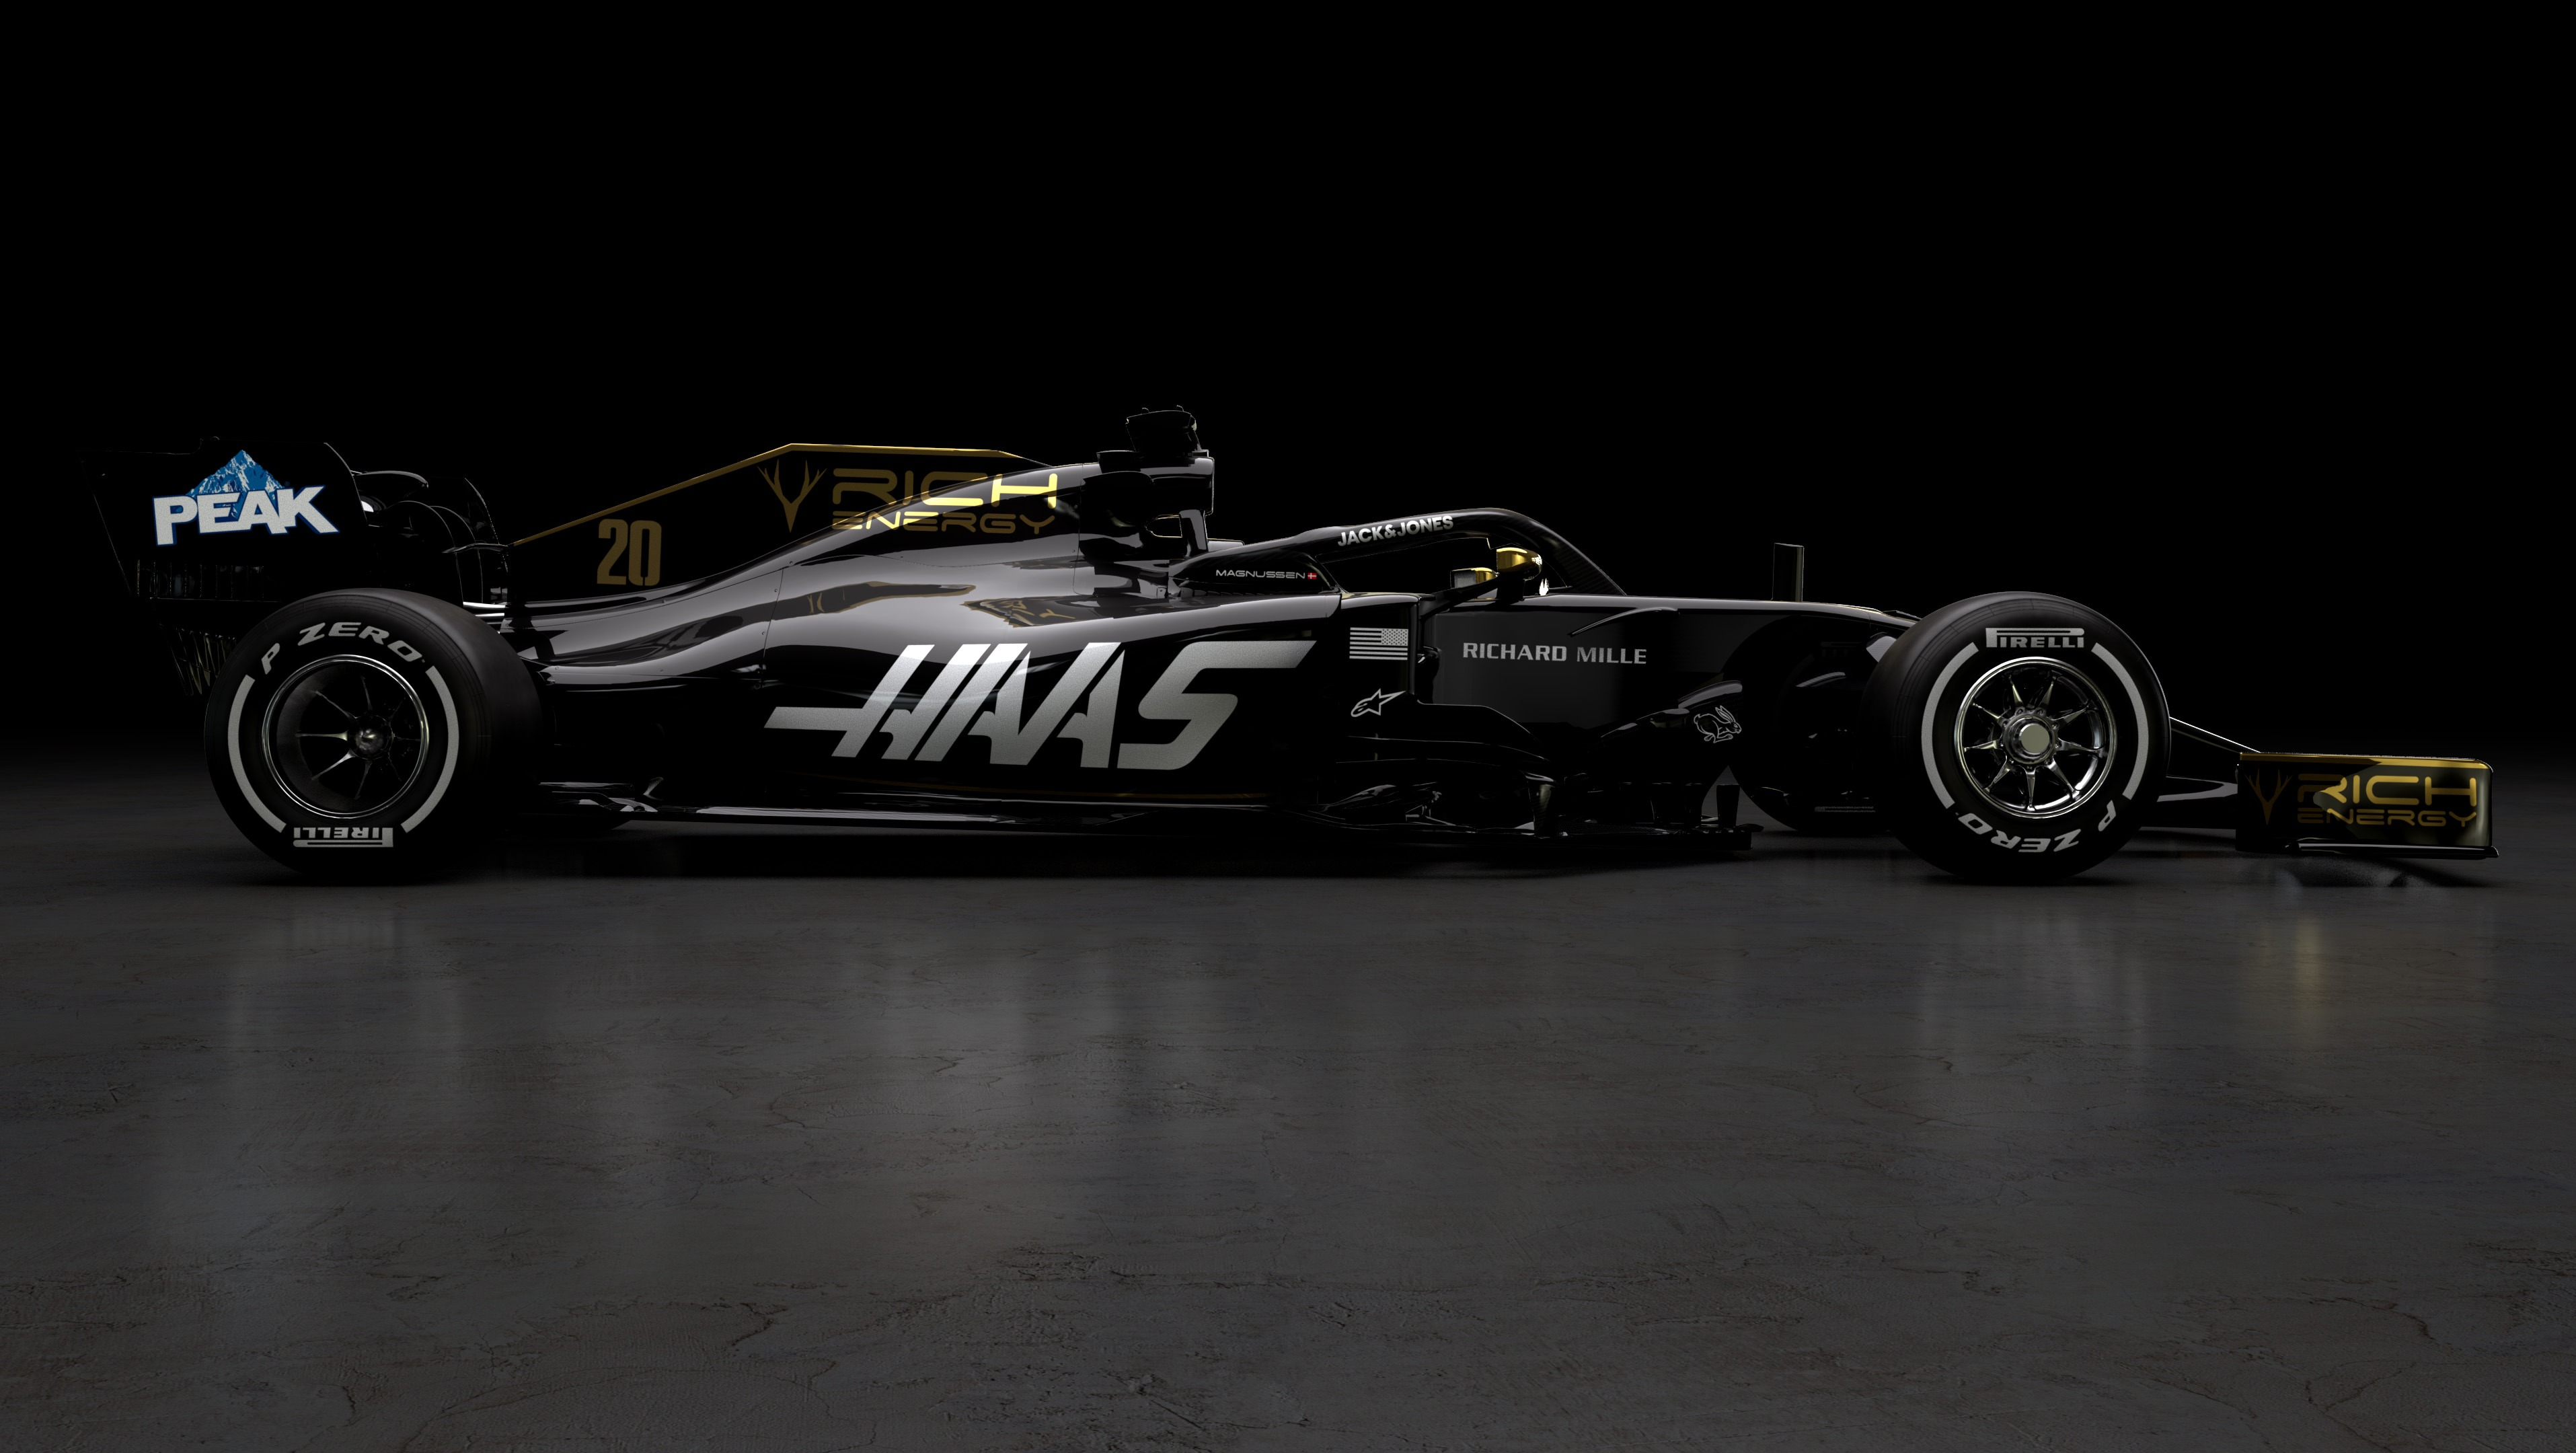 2019 haas vf 19 f1 car launch pictures f1. Black Bedroom Furniture Sets. Home Design Ideas